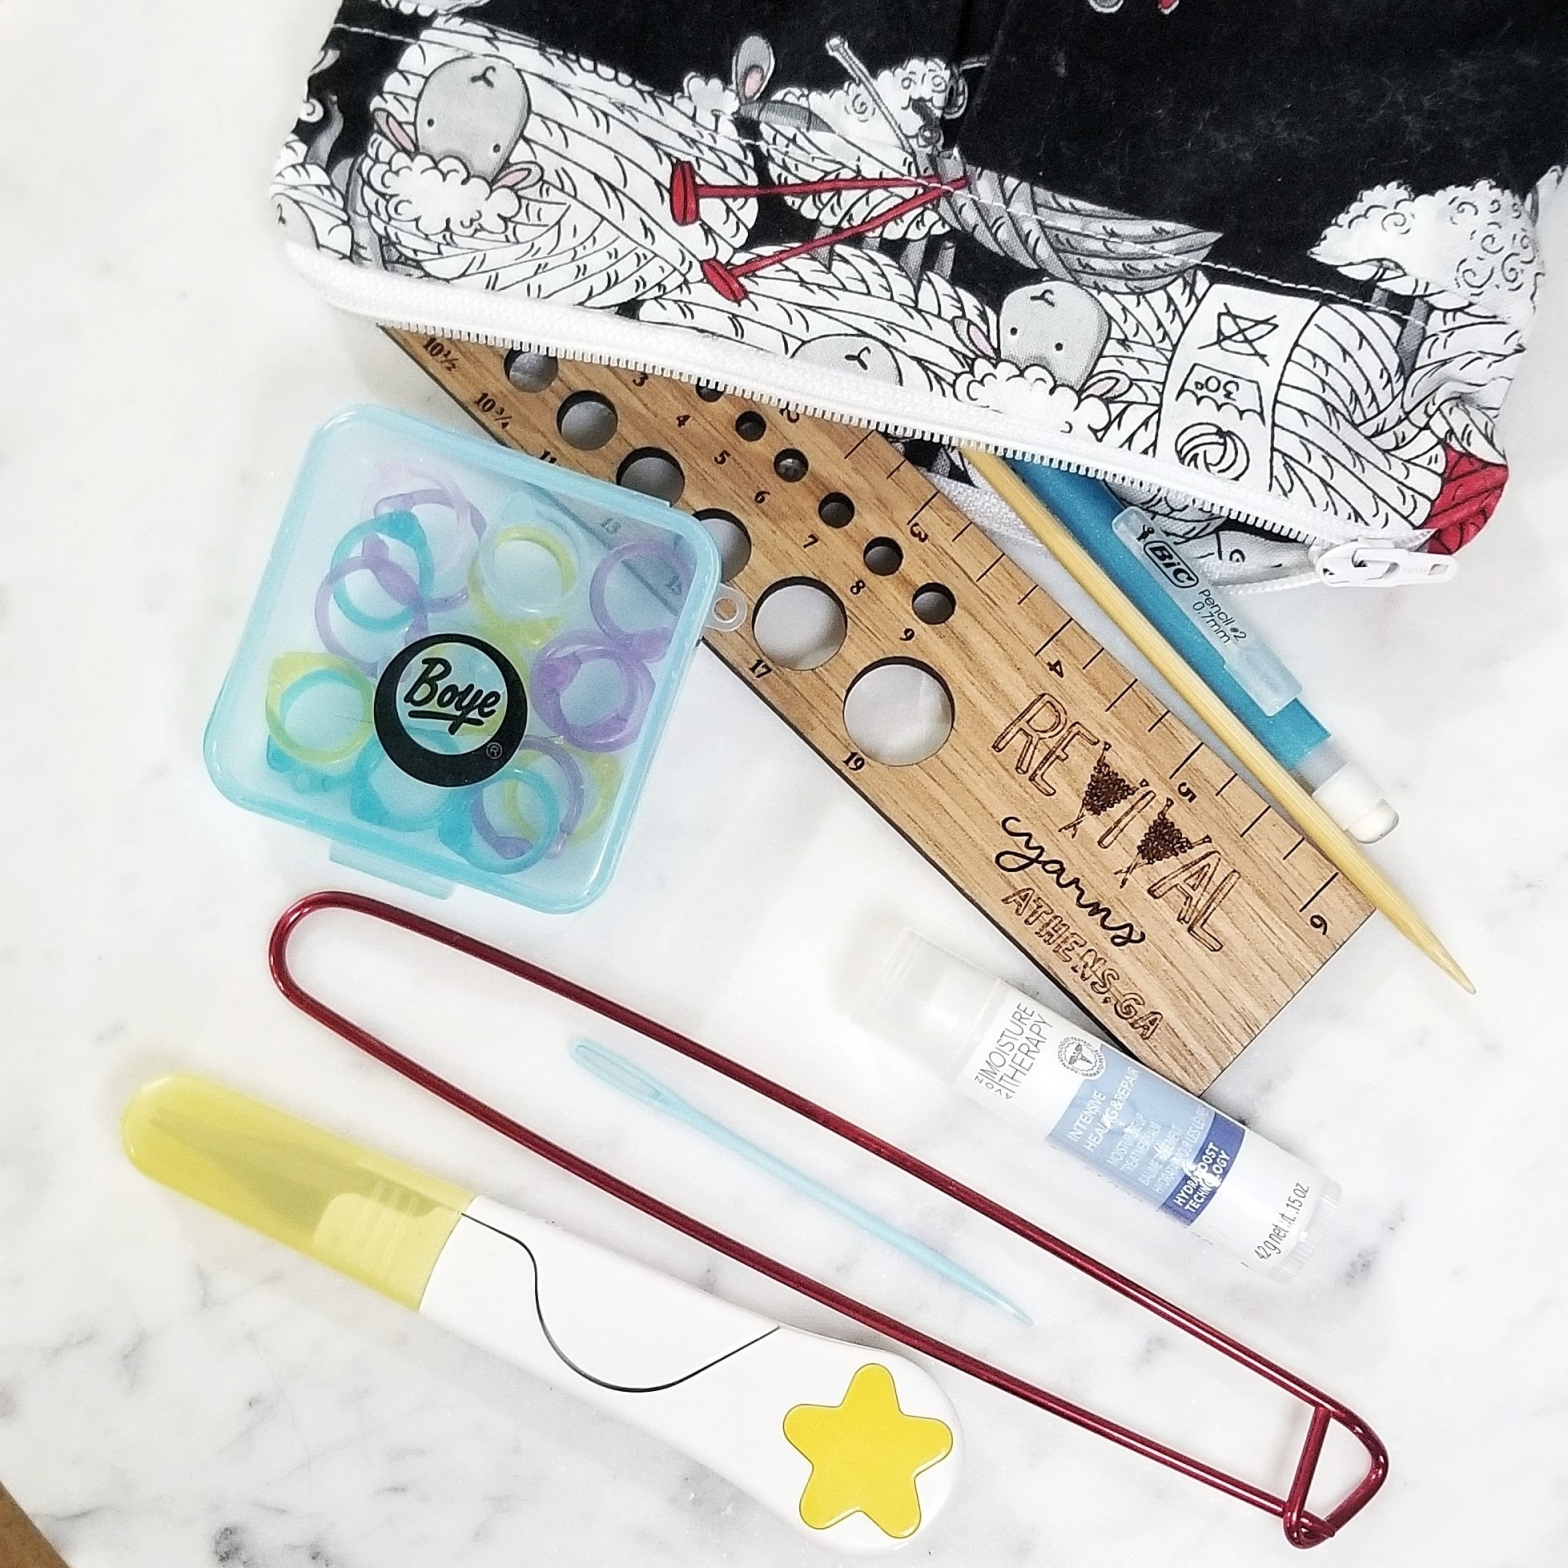 What to Keep in Your Knitting Bag